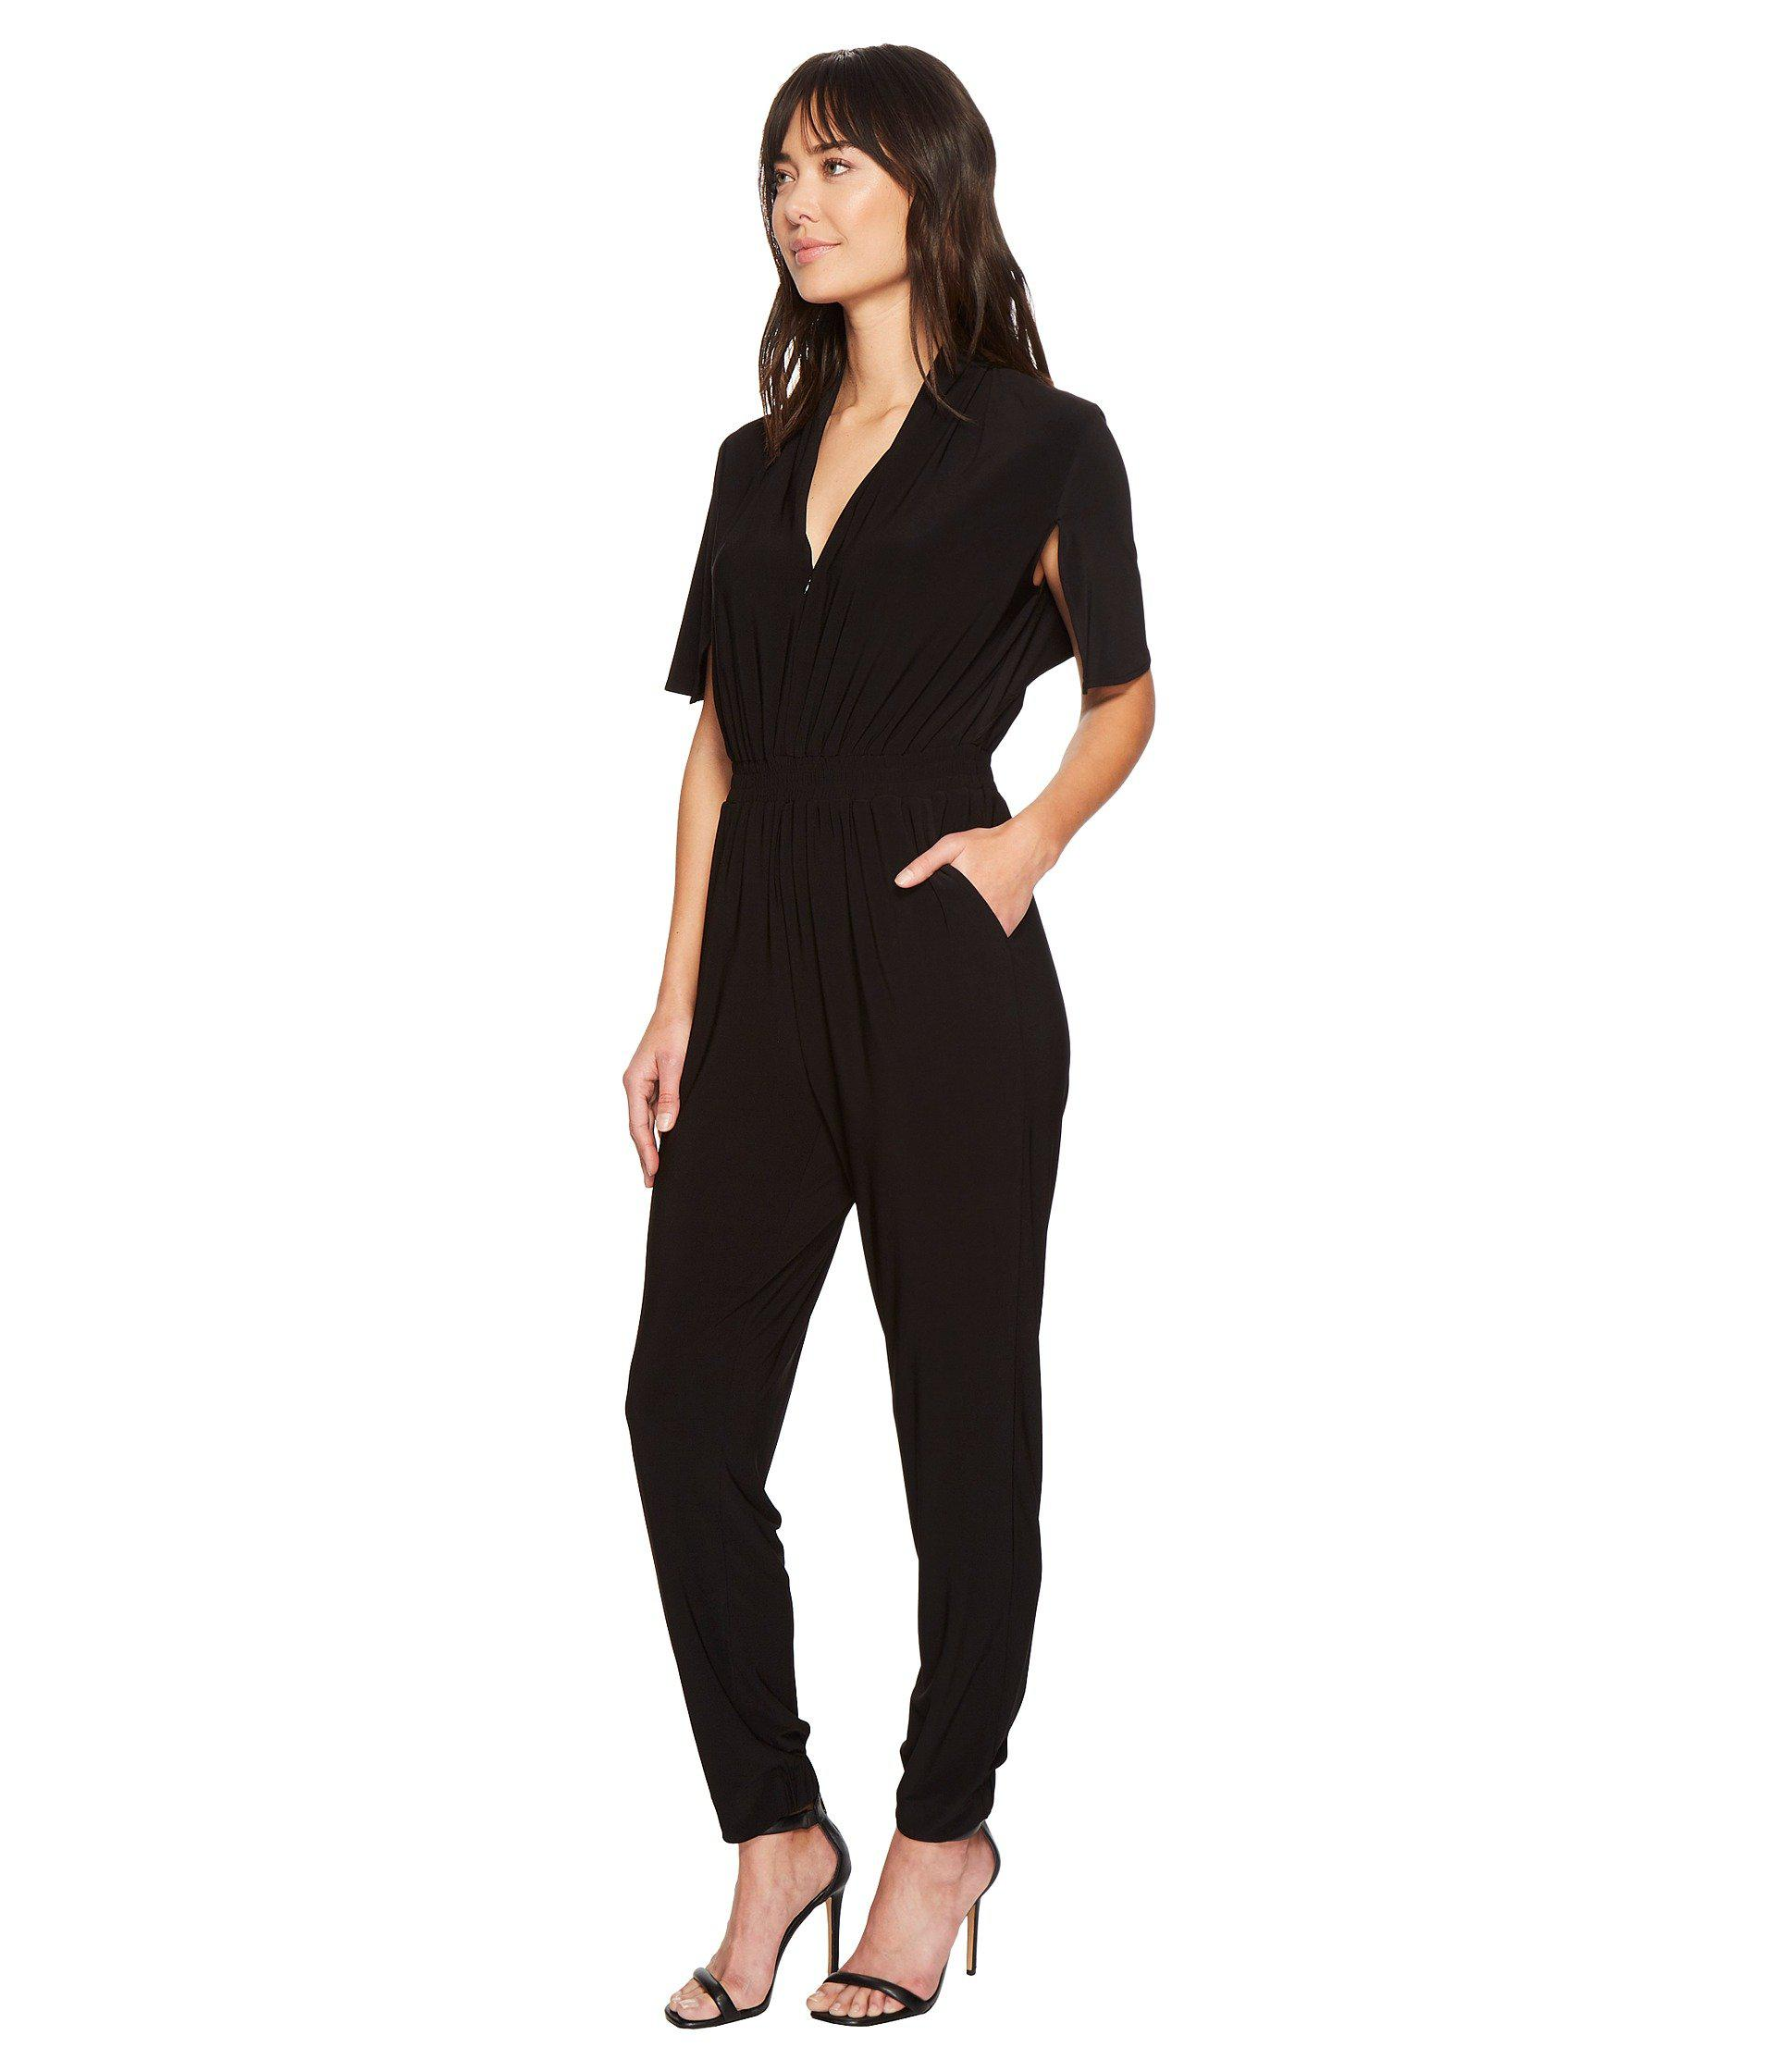 18aeb754bea Lyst - Laundry by Shelli Segal Jersey Jumpsuit in Black - Save 14%